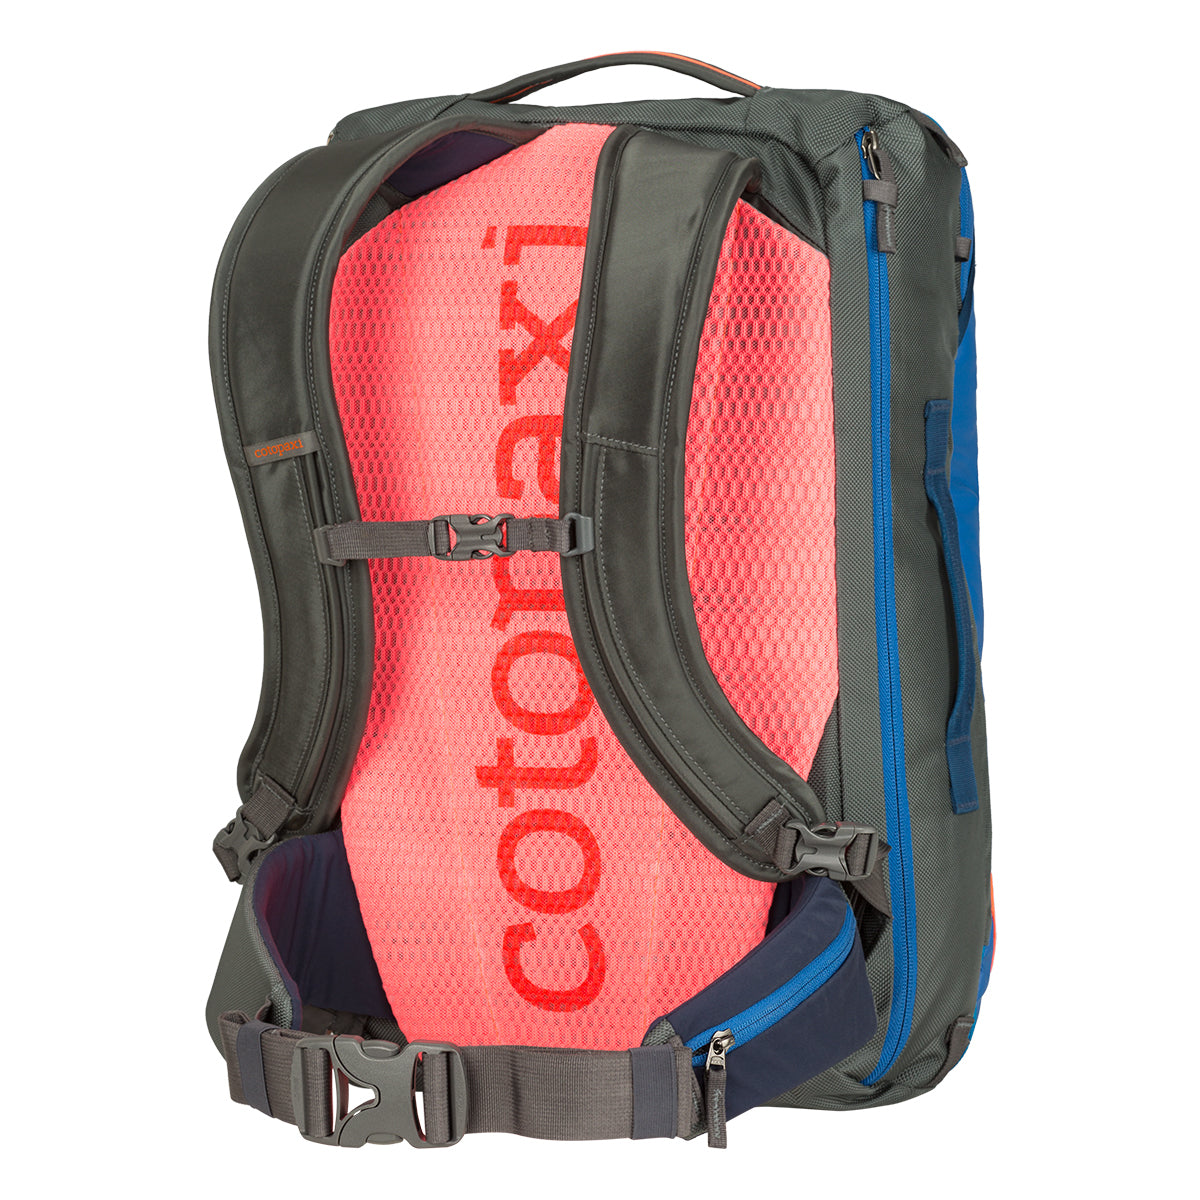 baf20b96e0f3 Cotopaxi Allpa 35L Travel Pack in True Blue